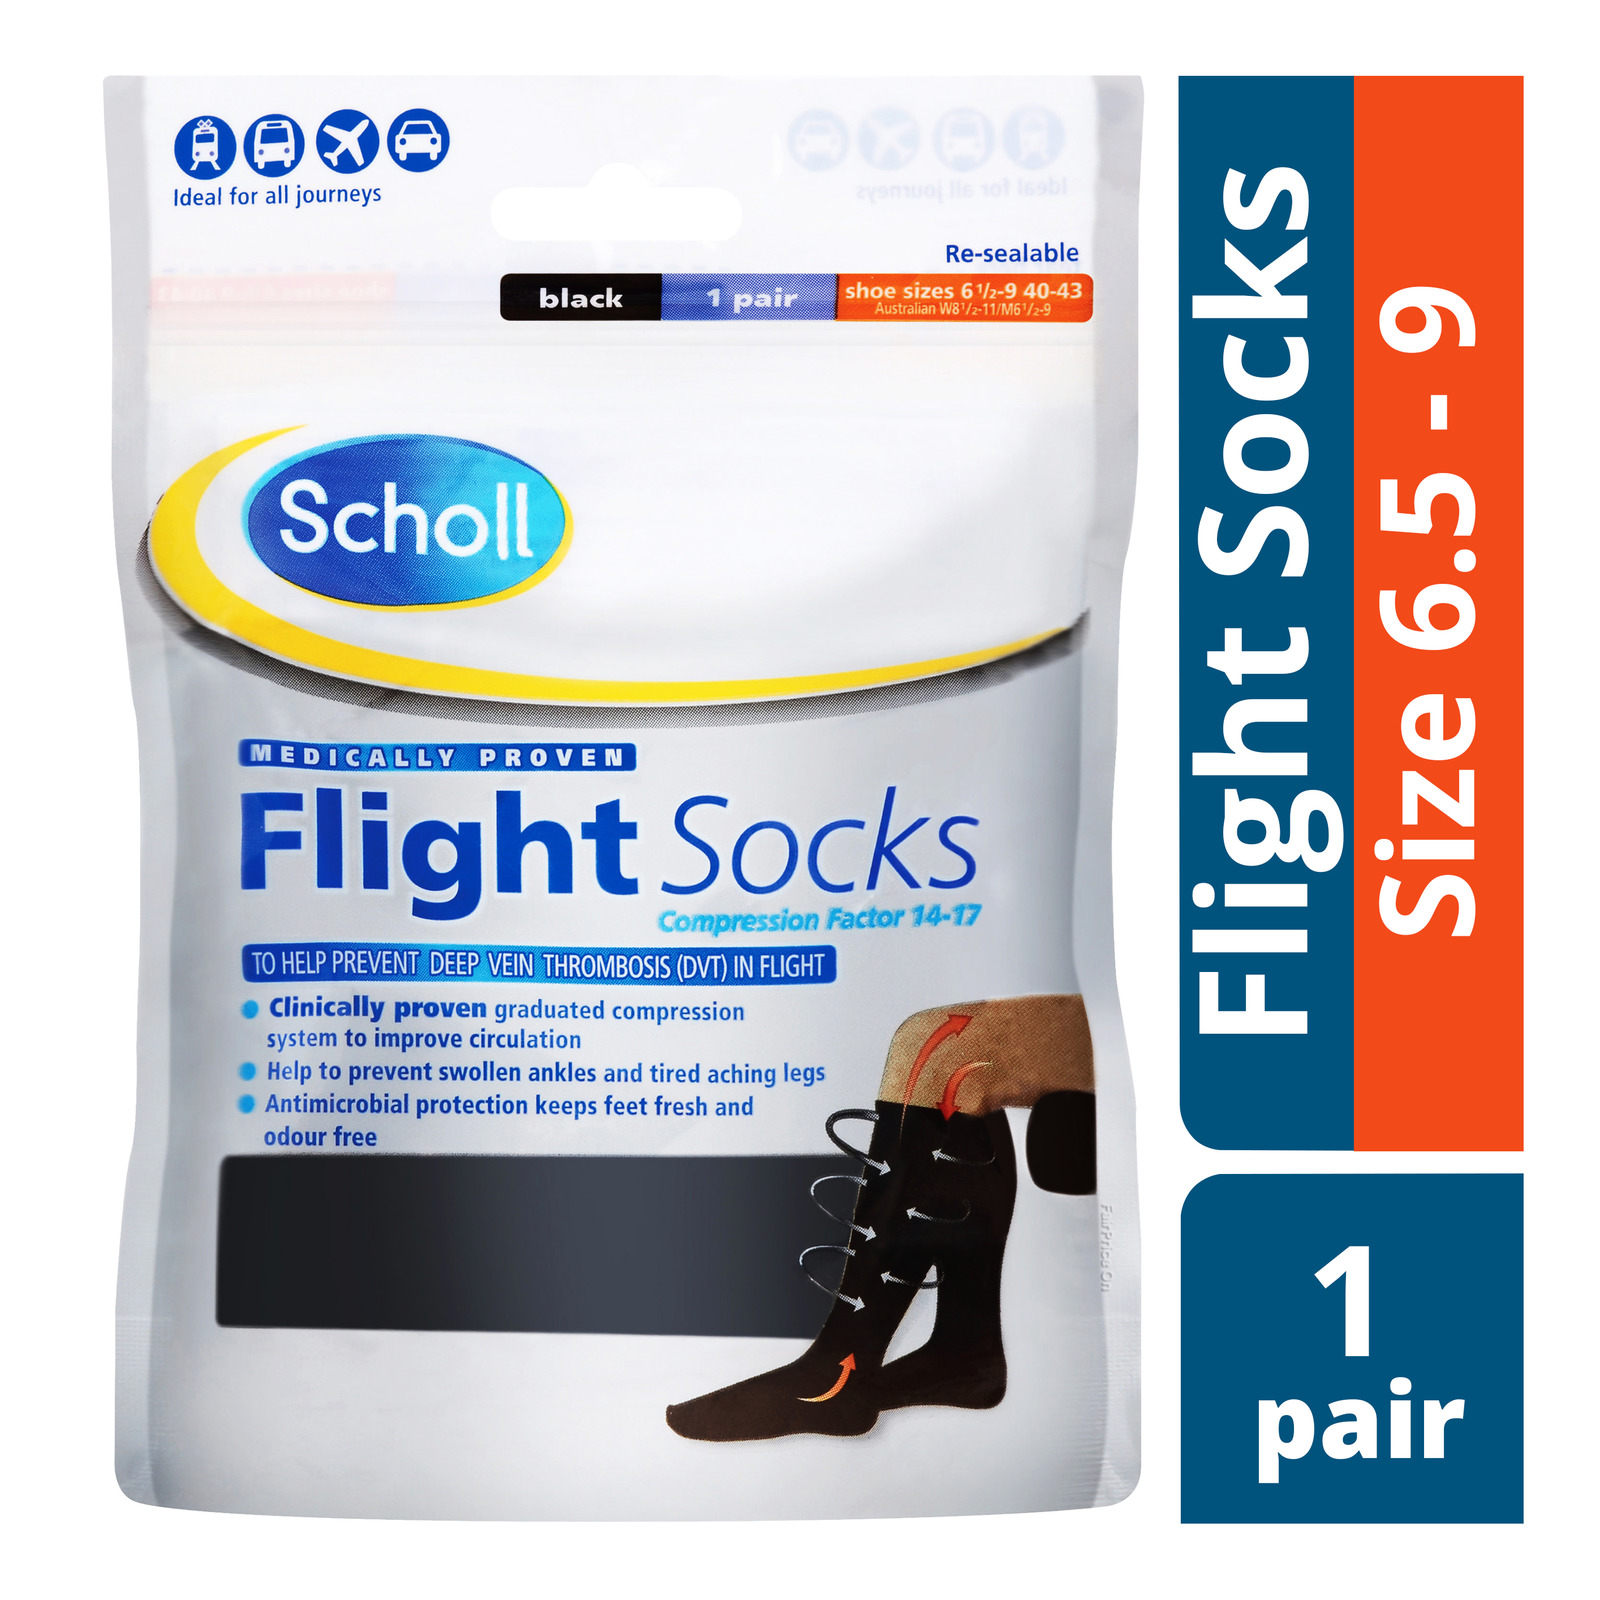 Scholl Flight Socks - Size 6.5 - 9